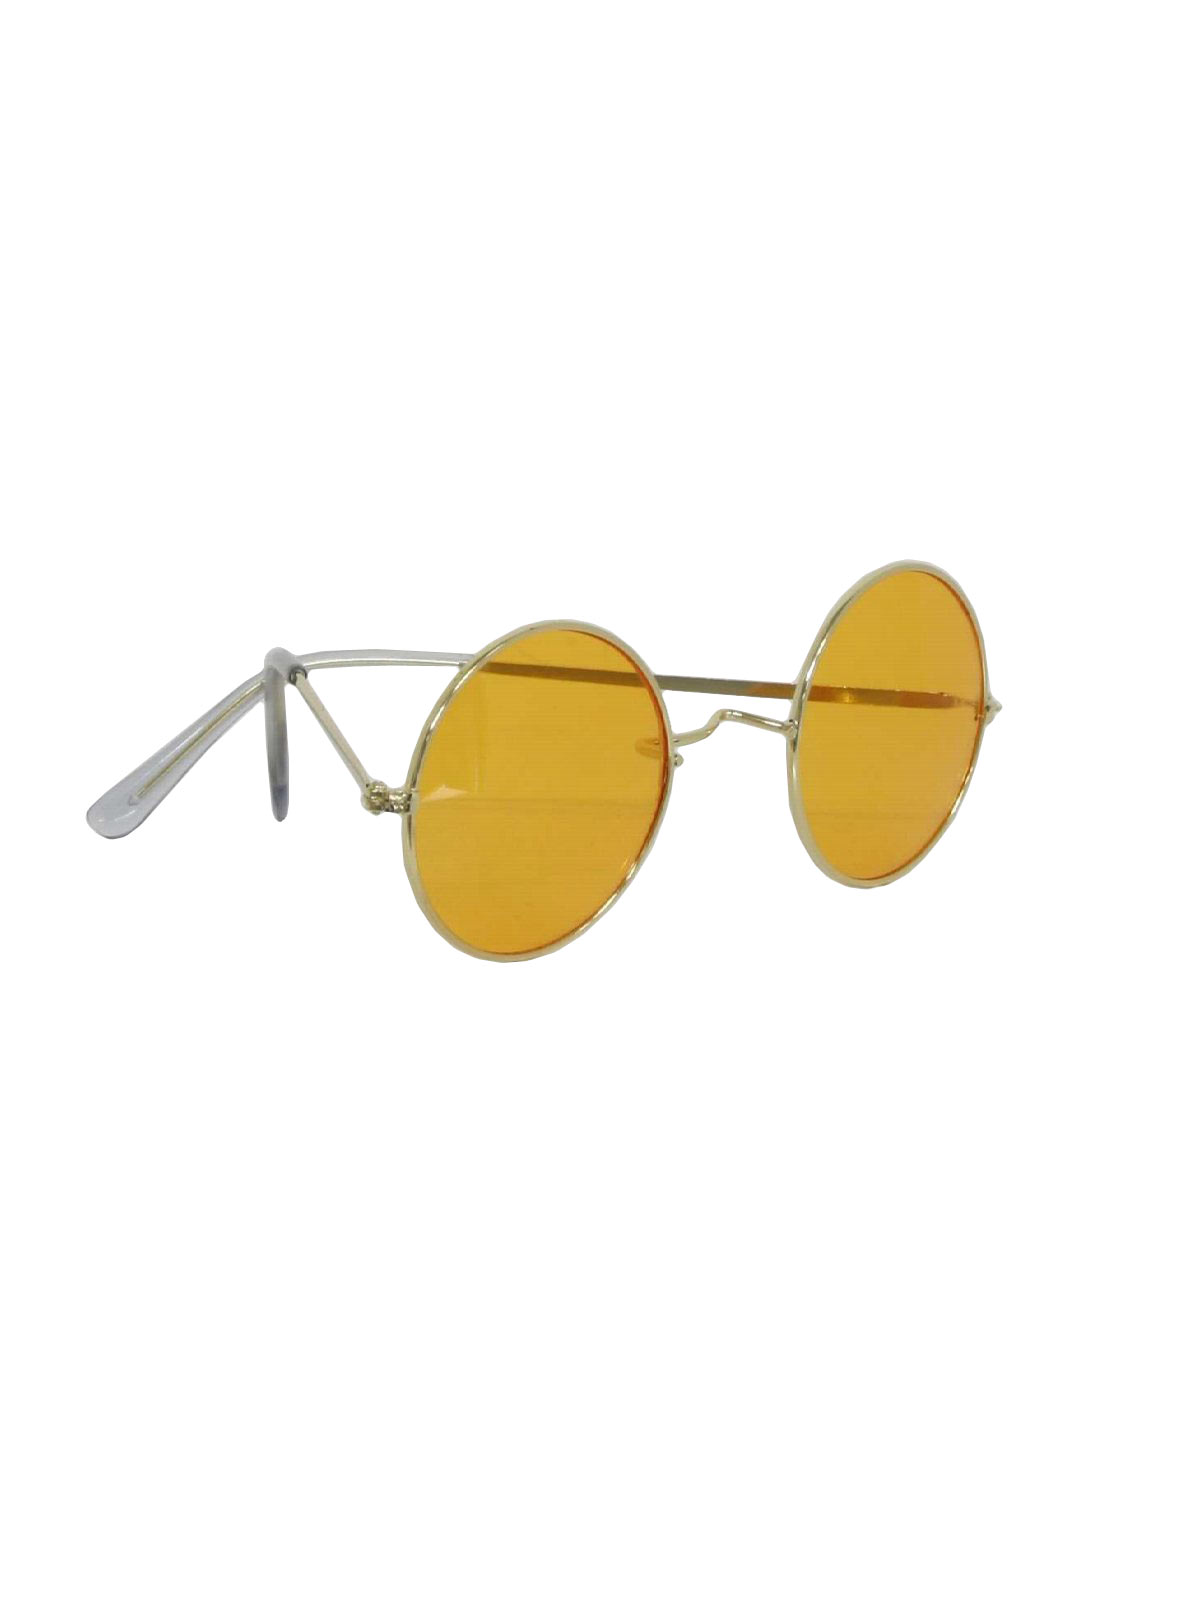 500b35d2f14 Hippie Glasses Amazon